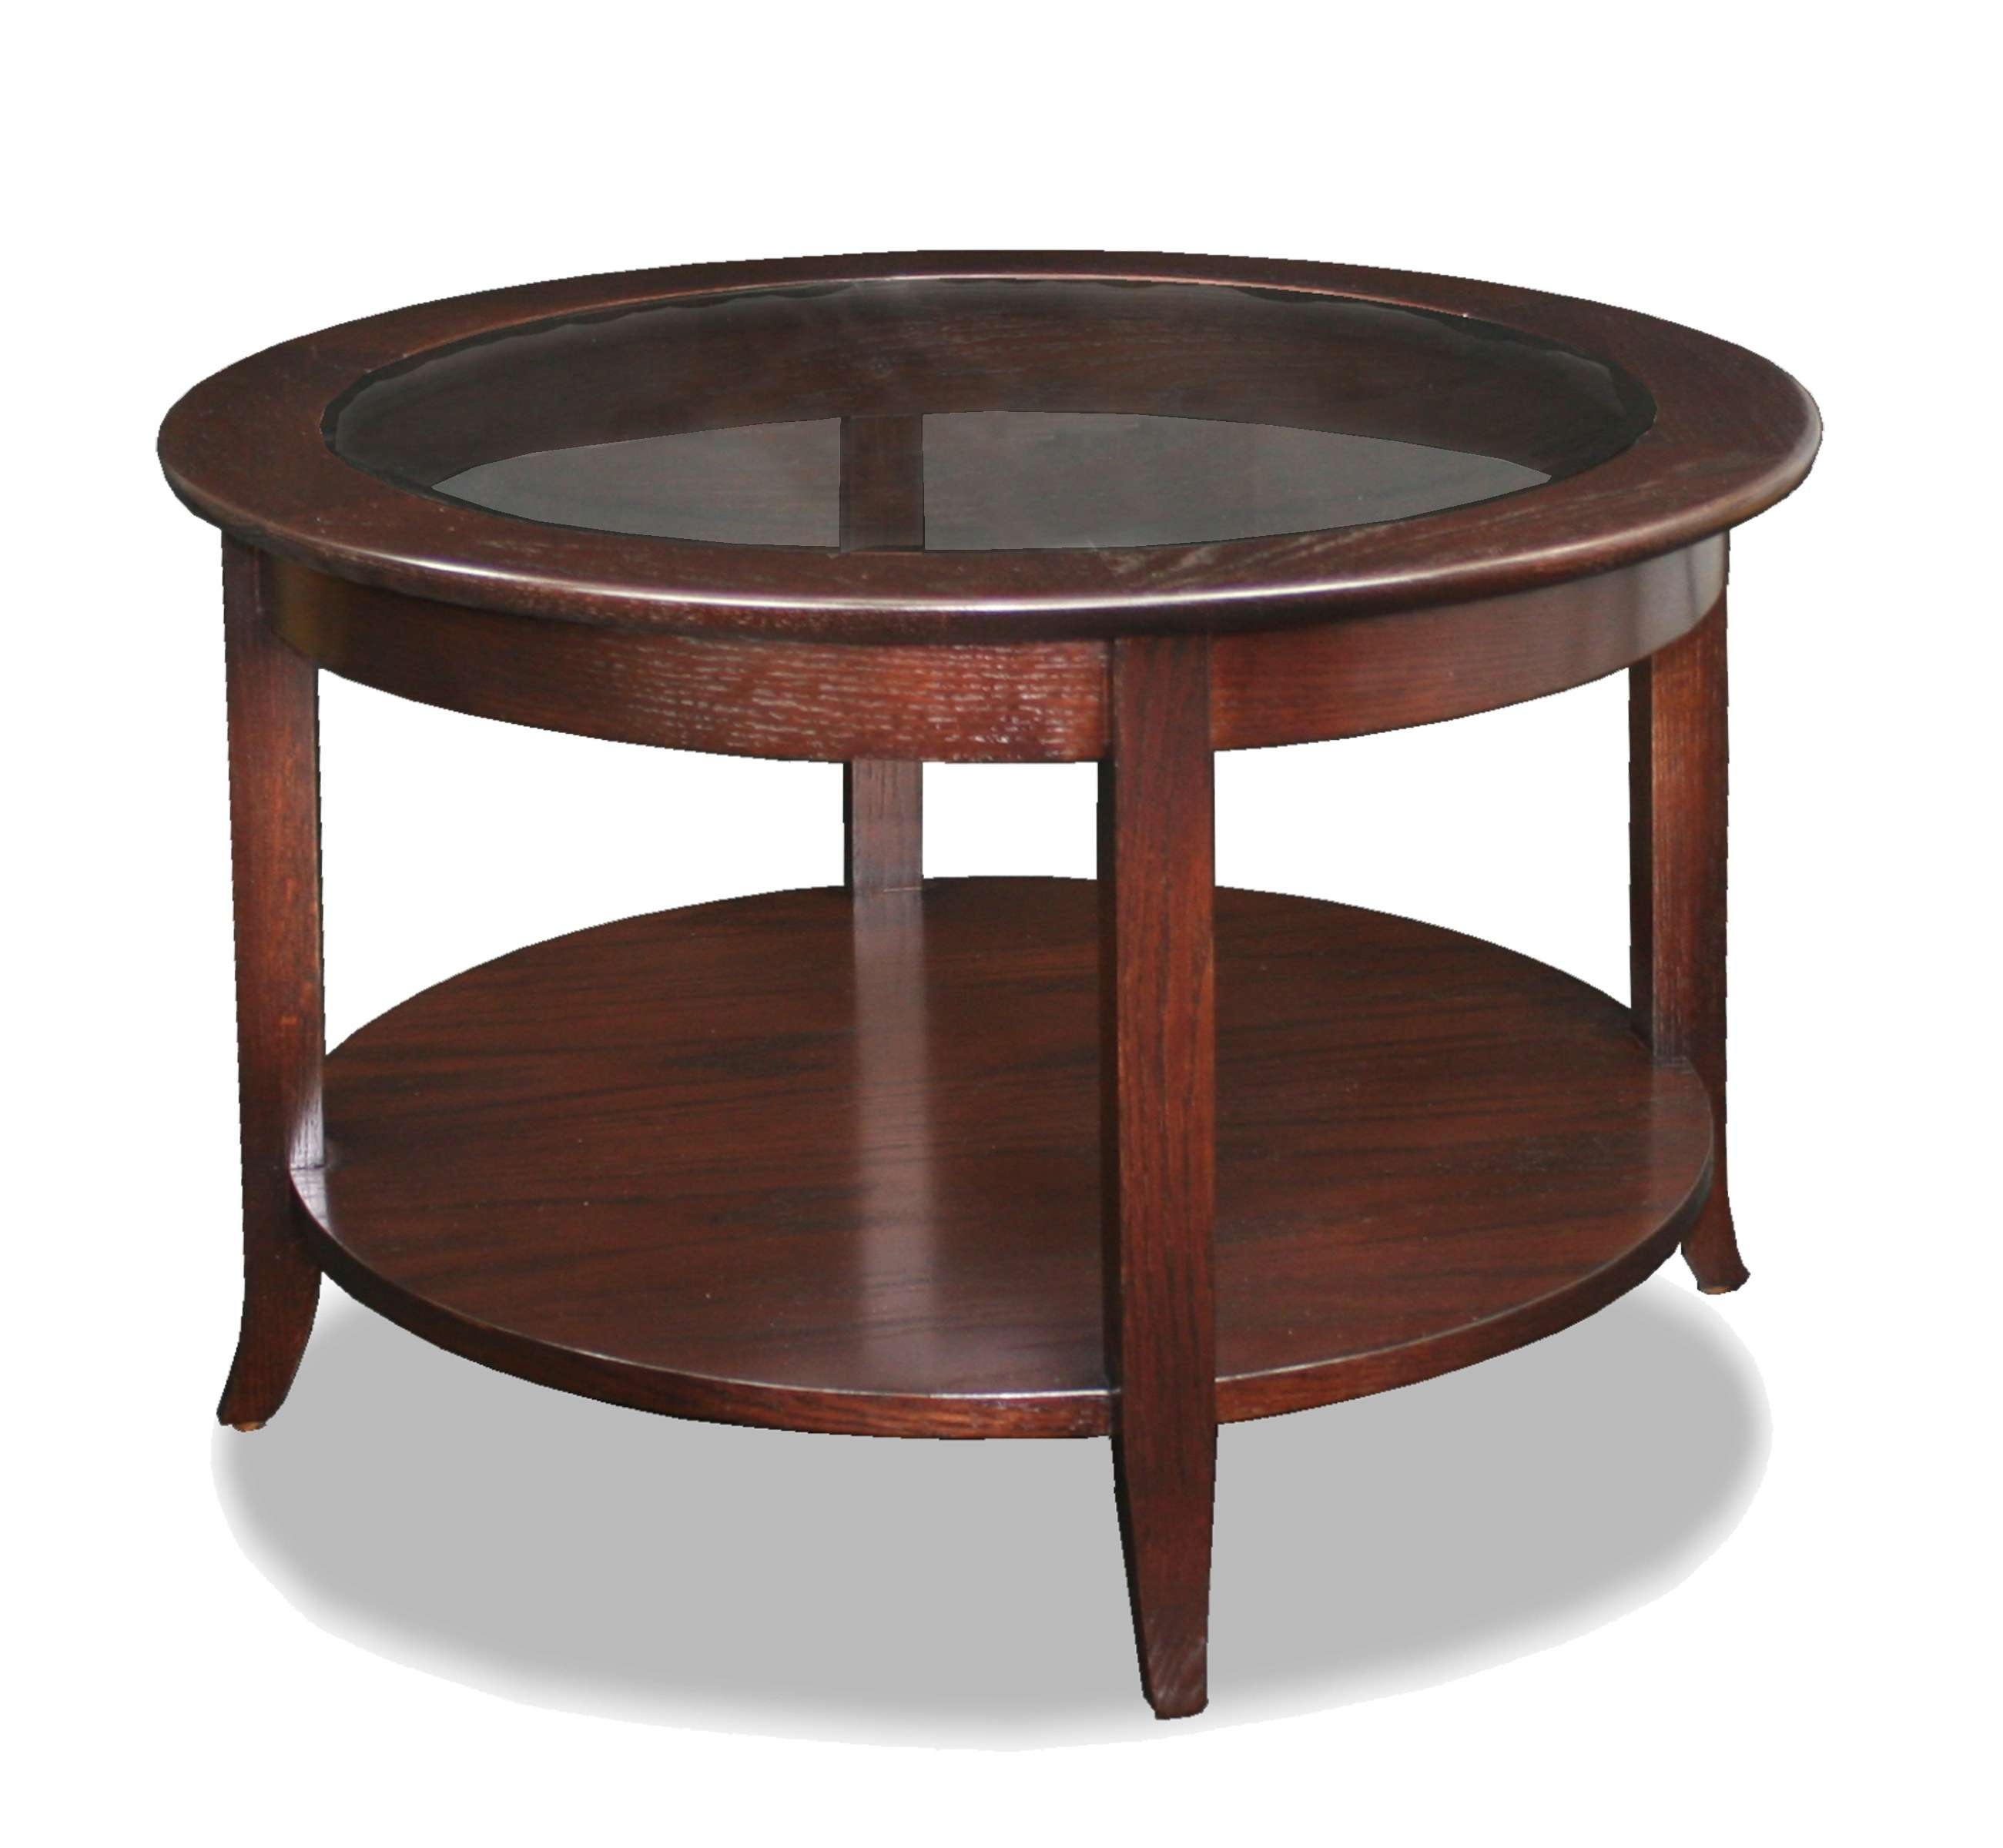 Most Up To Date Round Wood And Glass Coffee Tables Throughout Coffee Tables : Round Coffee Table Wood And Glass With Storage (View 6 of 20)